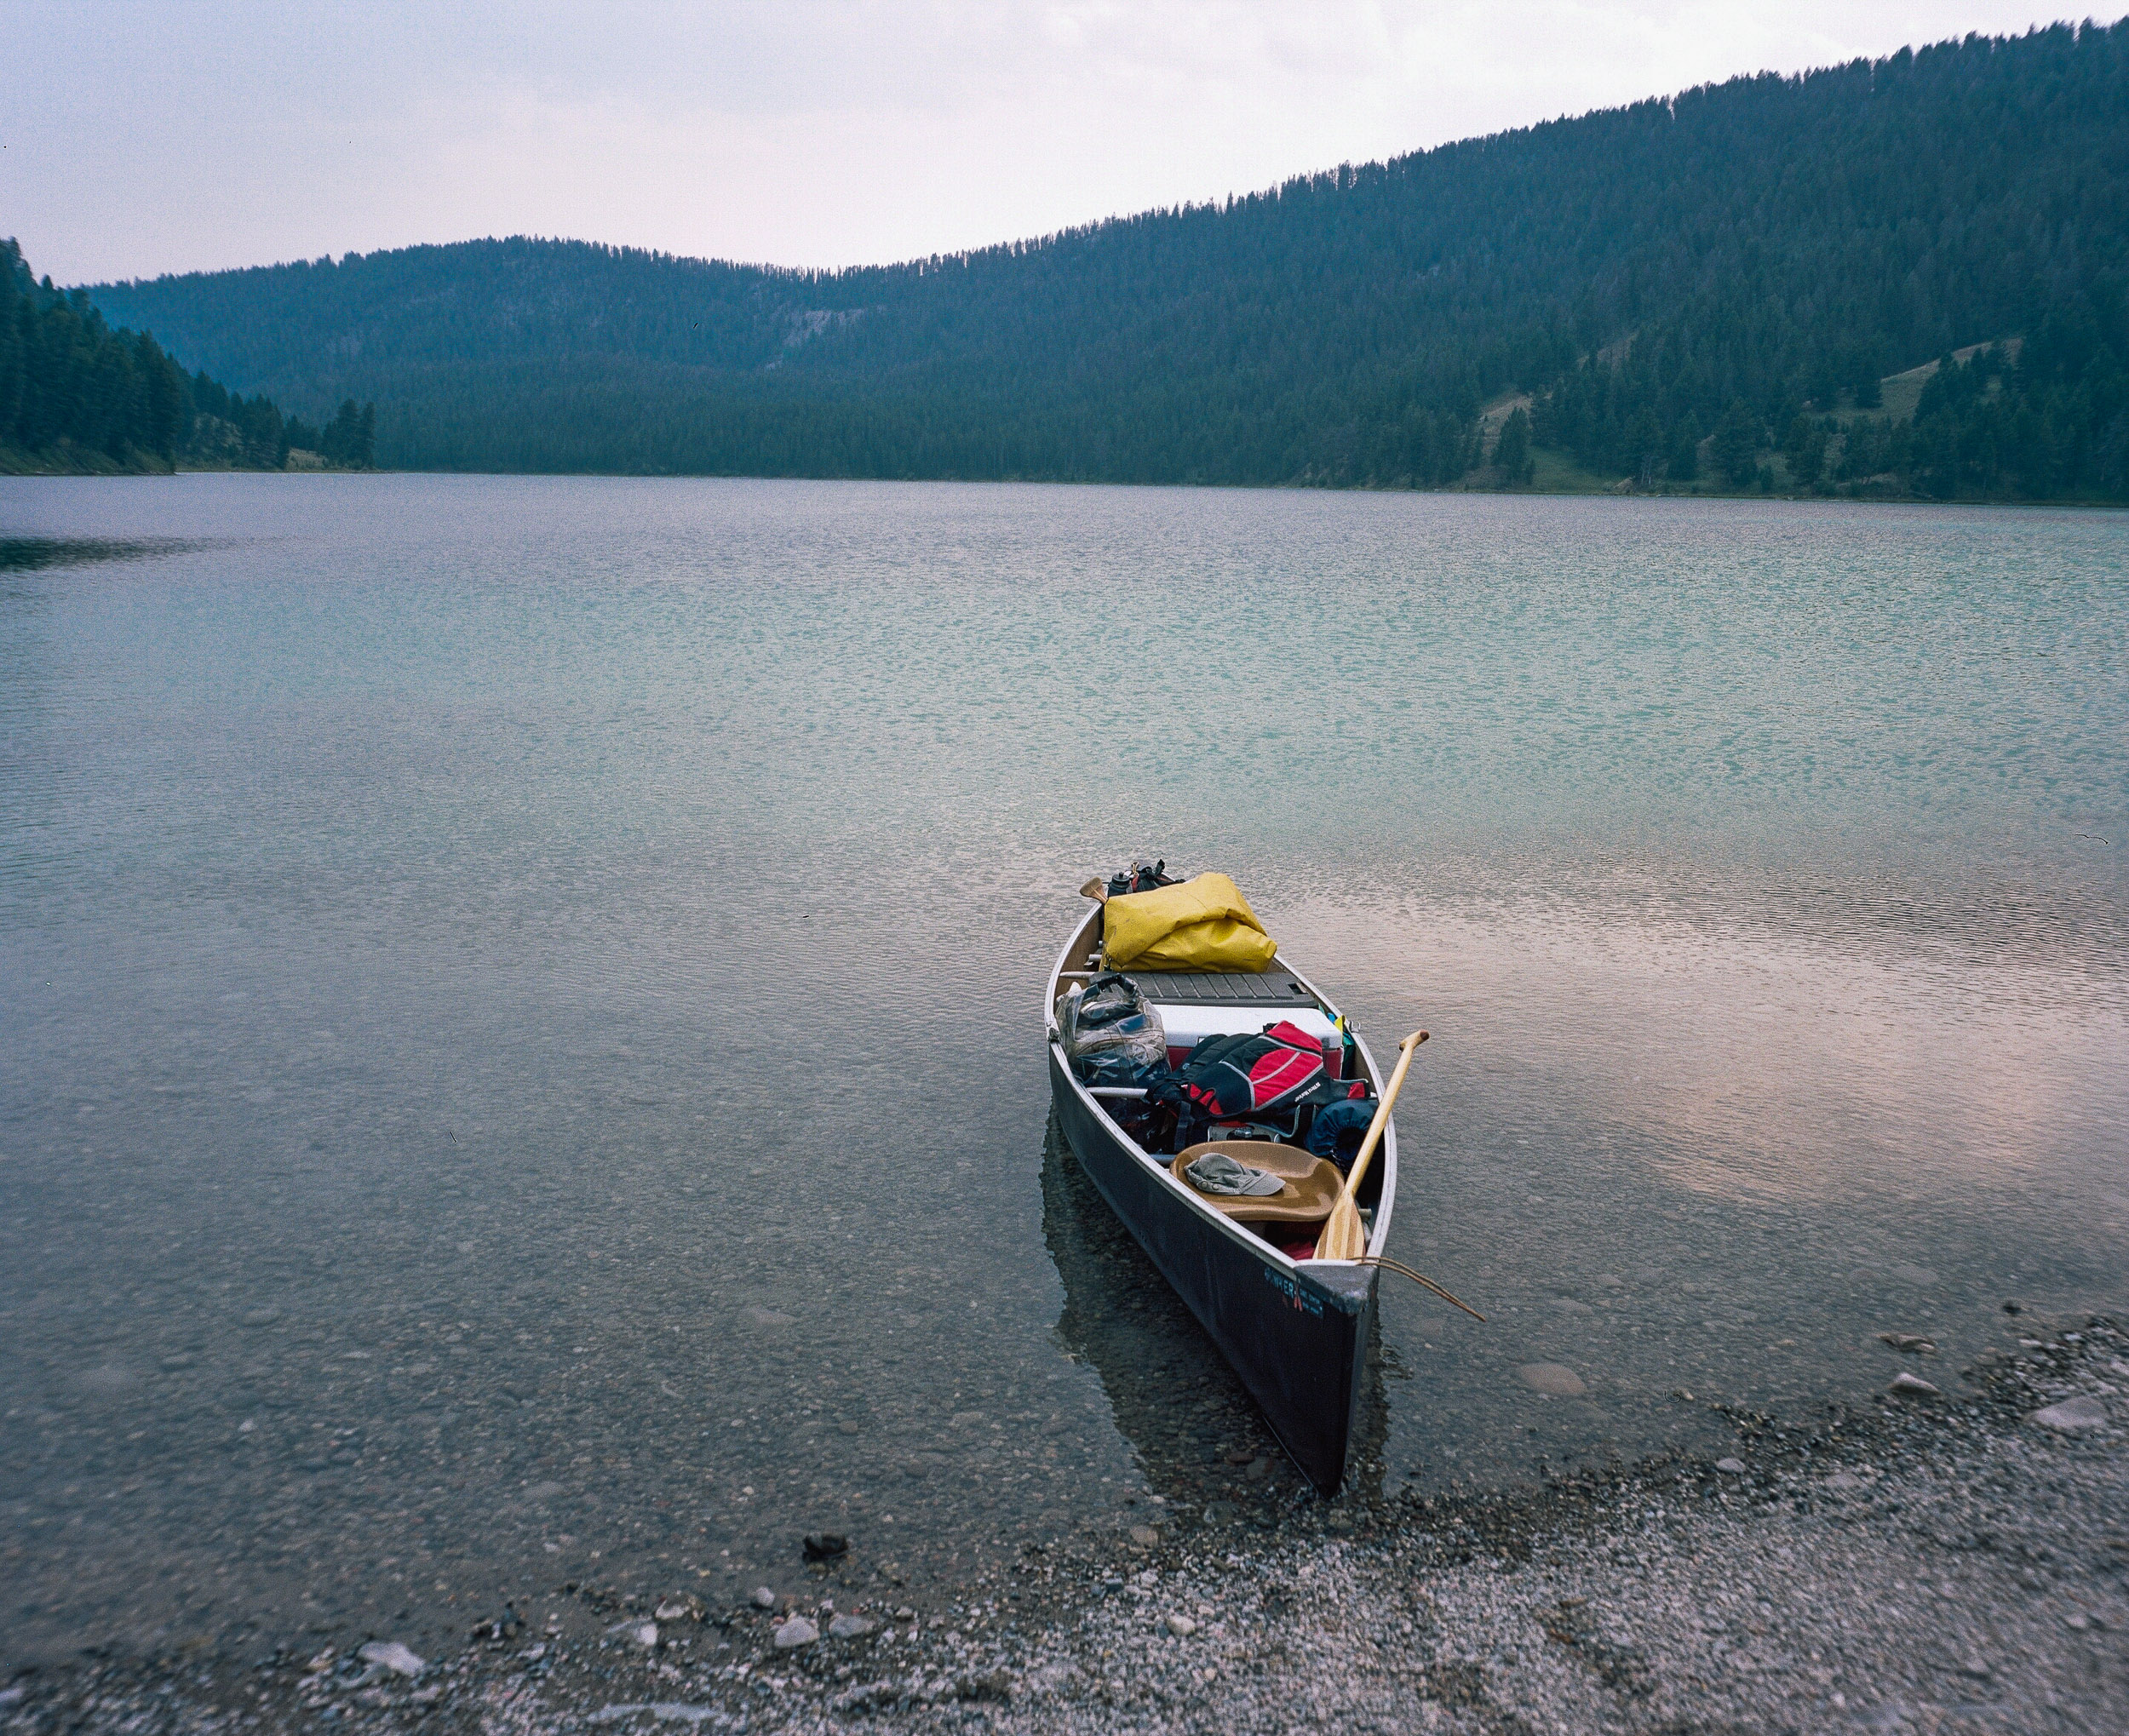 Fully loaded pack canoe in blue-green waters at Cliff Lake in Montana